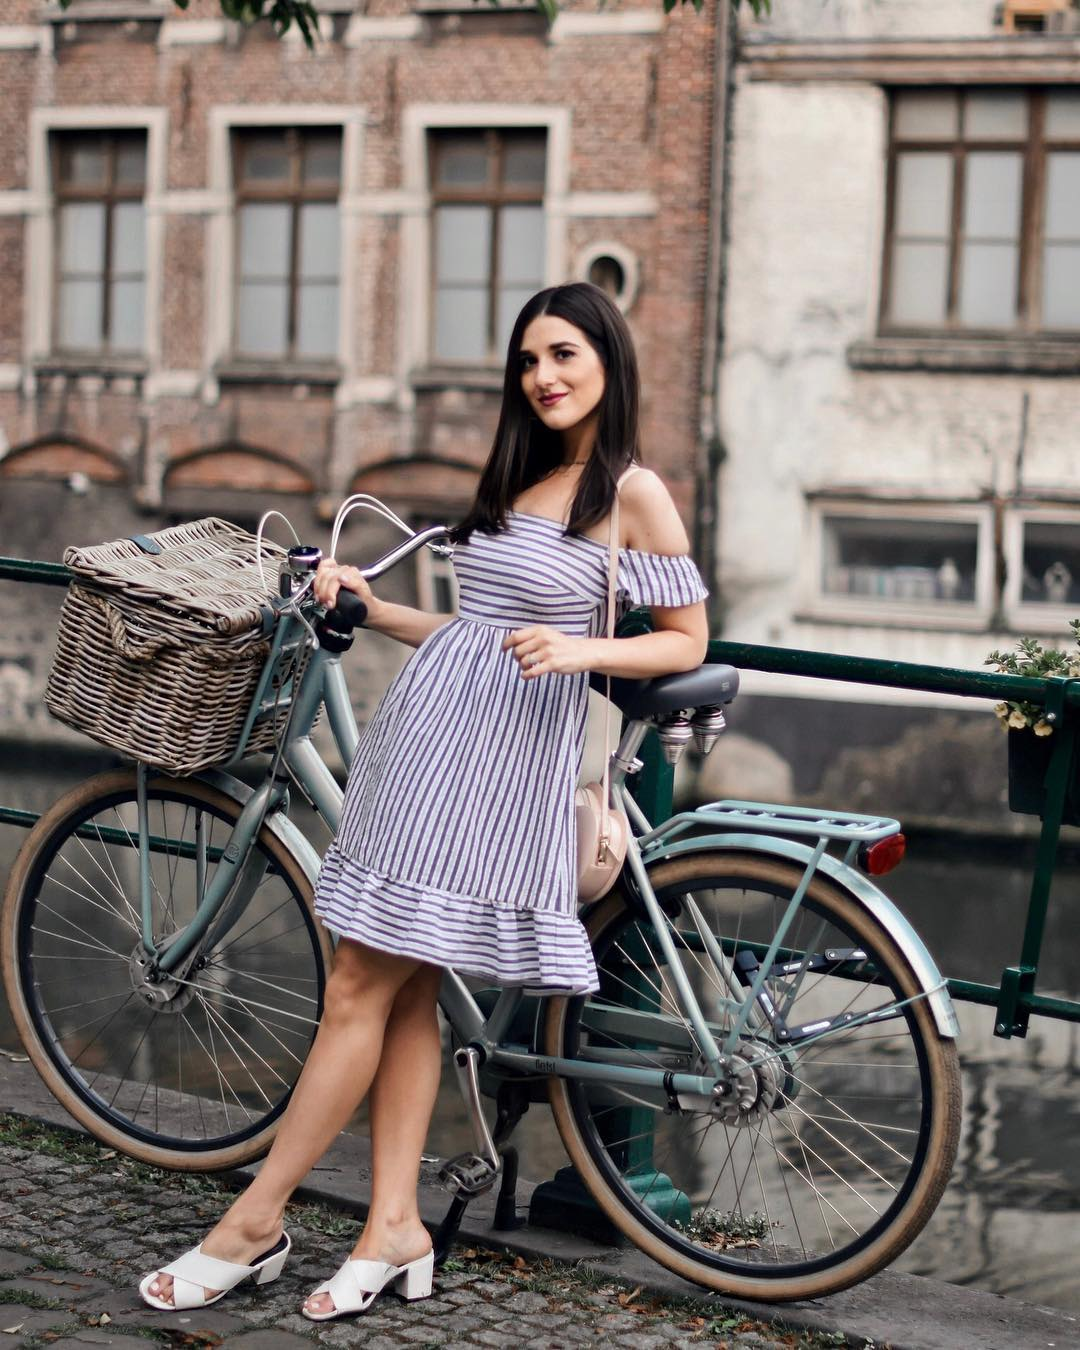 Belgium Travel Guide Bruges Ghent In 4 Days Esther Santer Fashion Blog NYC Street Style Blogger Outfit Sight Seeing Tourist Shop What How To Wear Expore What To Do Vacatiom Itinerary Short Stopover EuroTrip Europe Layover Summer  Destination Country.jpg